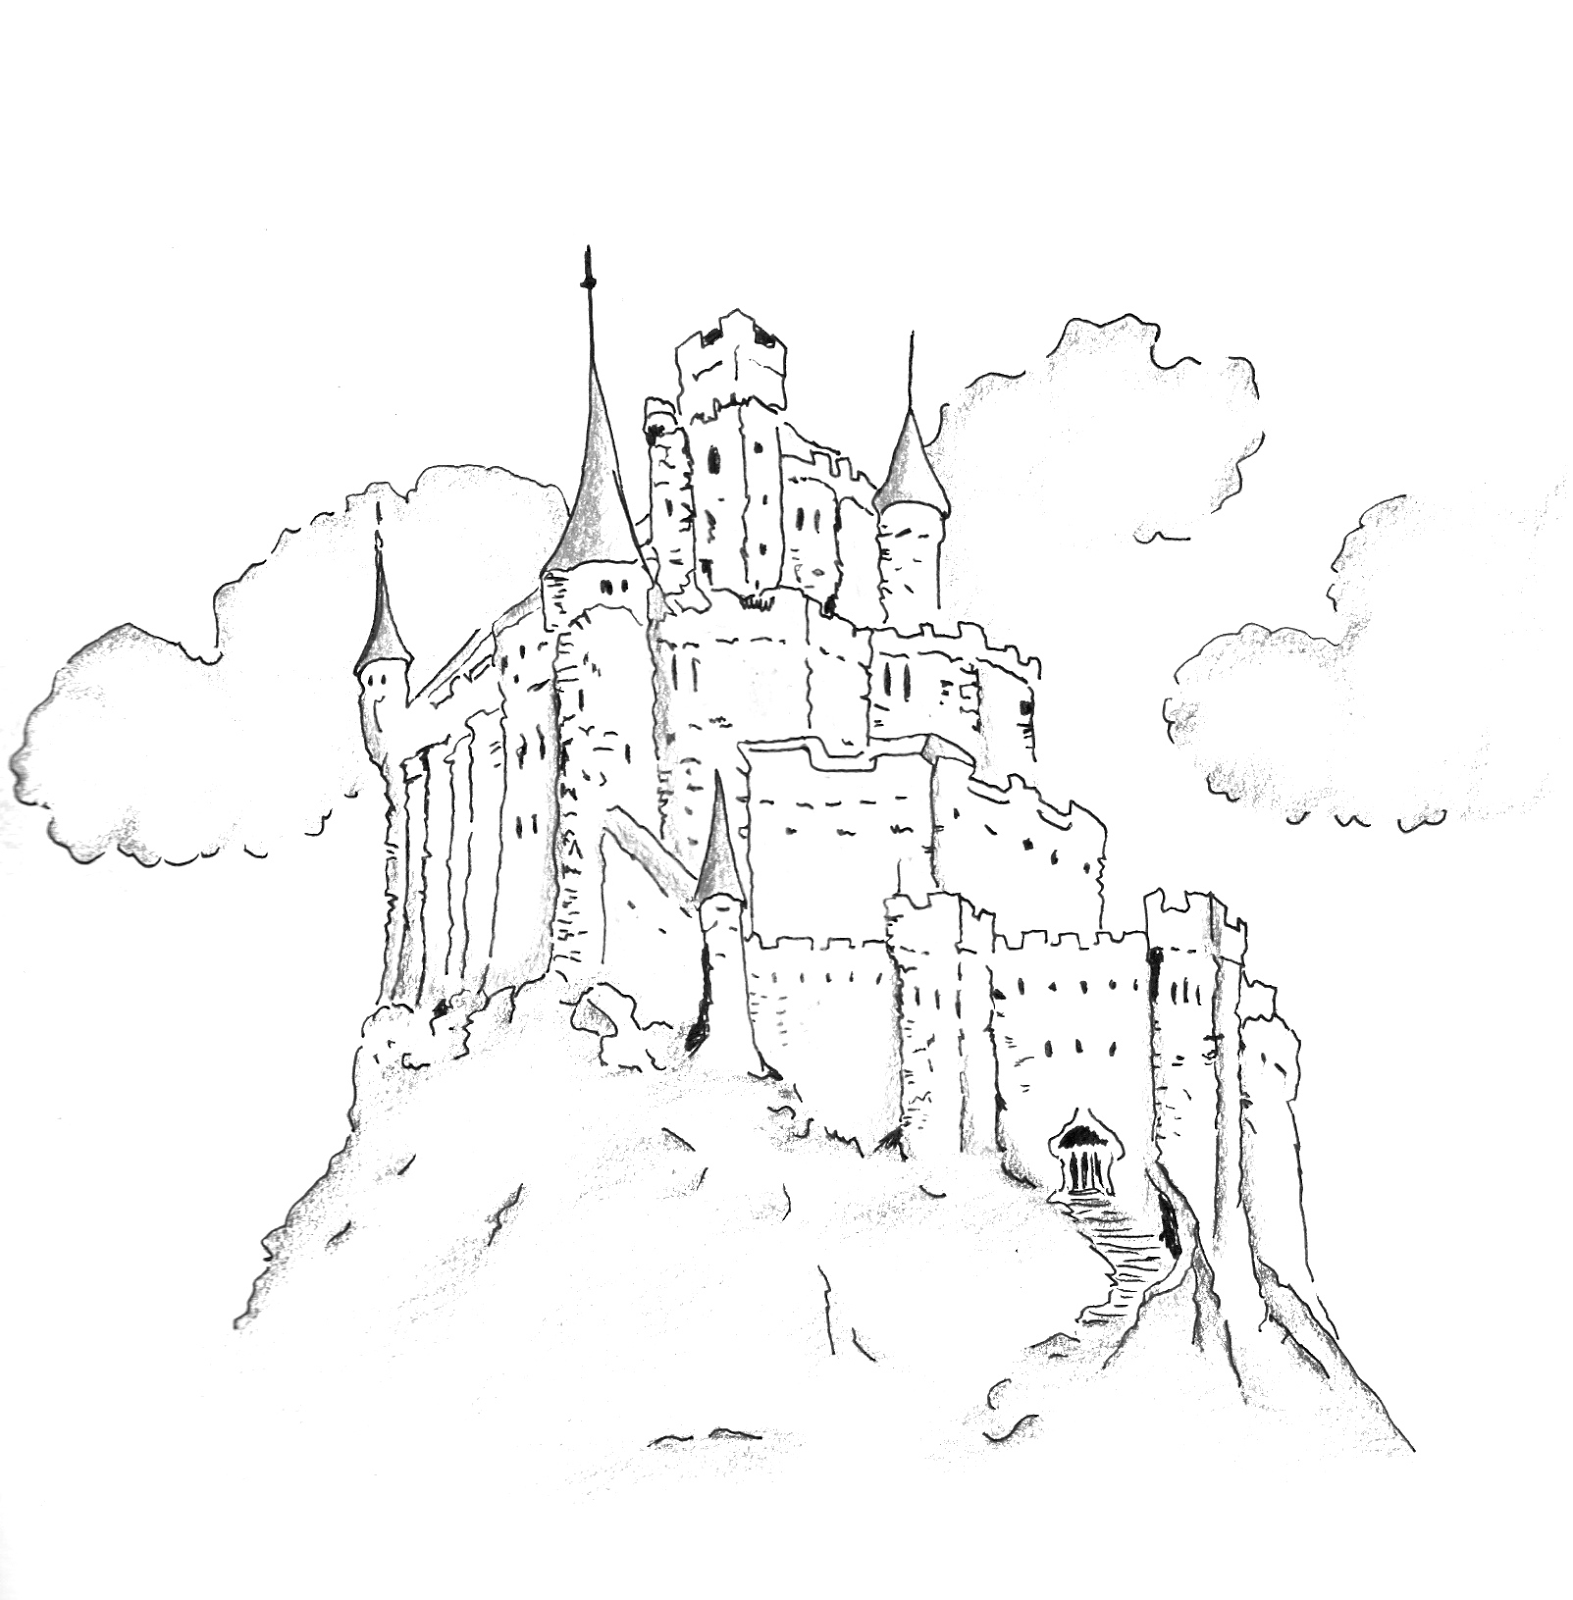 Pin by Albina on Sketchbook | Art drawings simple, Castle ...